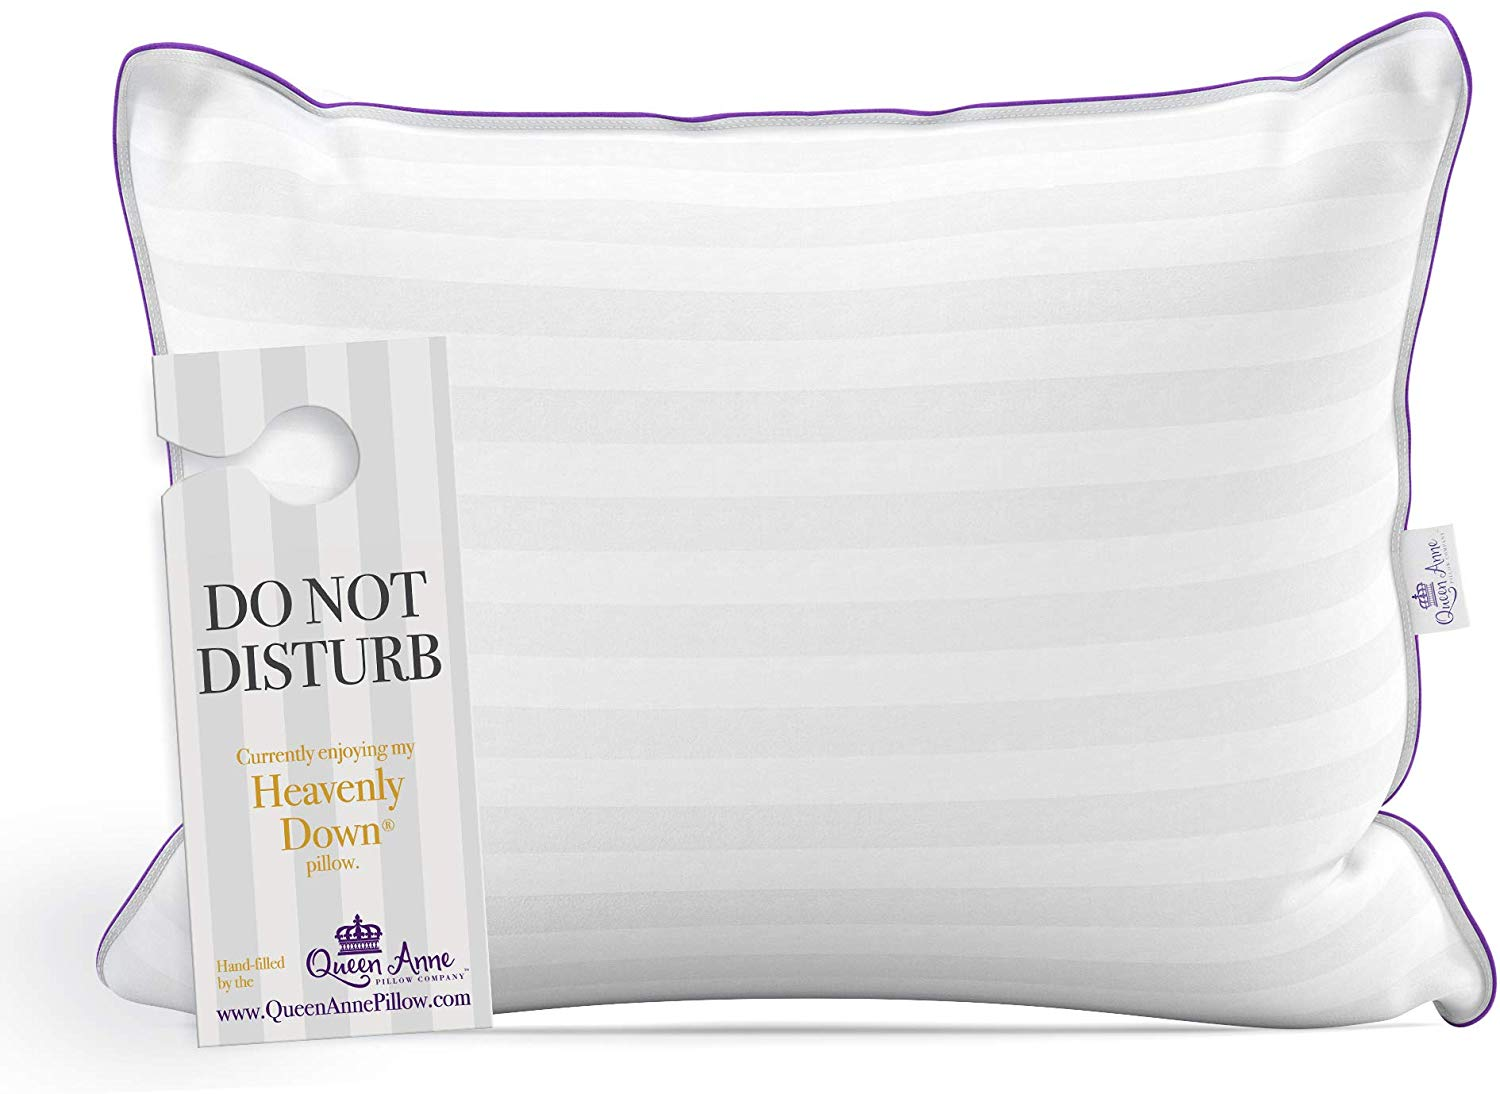 Queen Anne Pillow Company best down pillows review by www.dailysleep.org